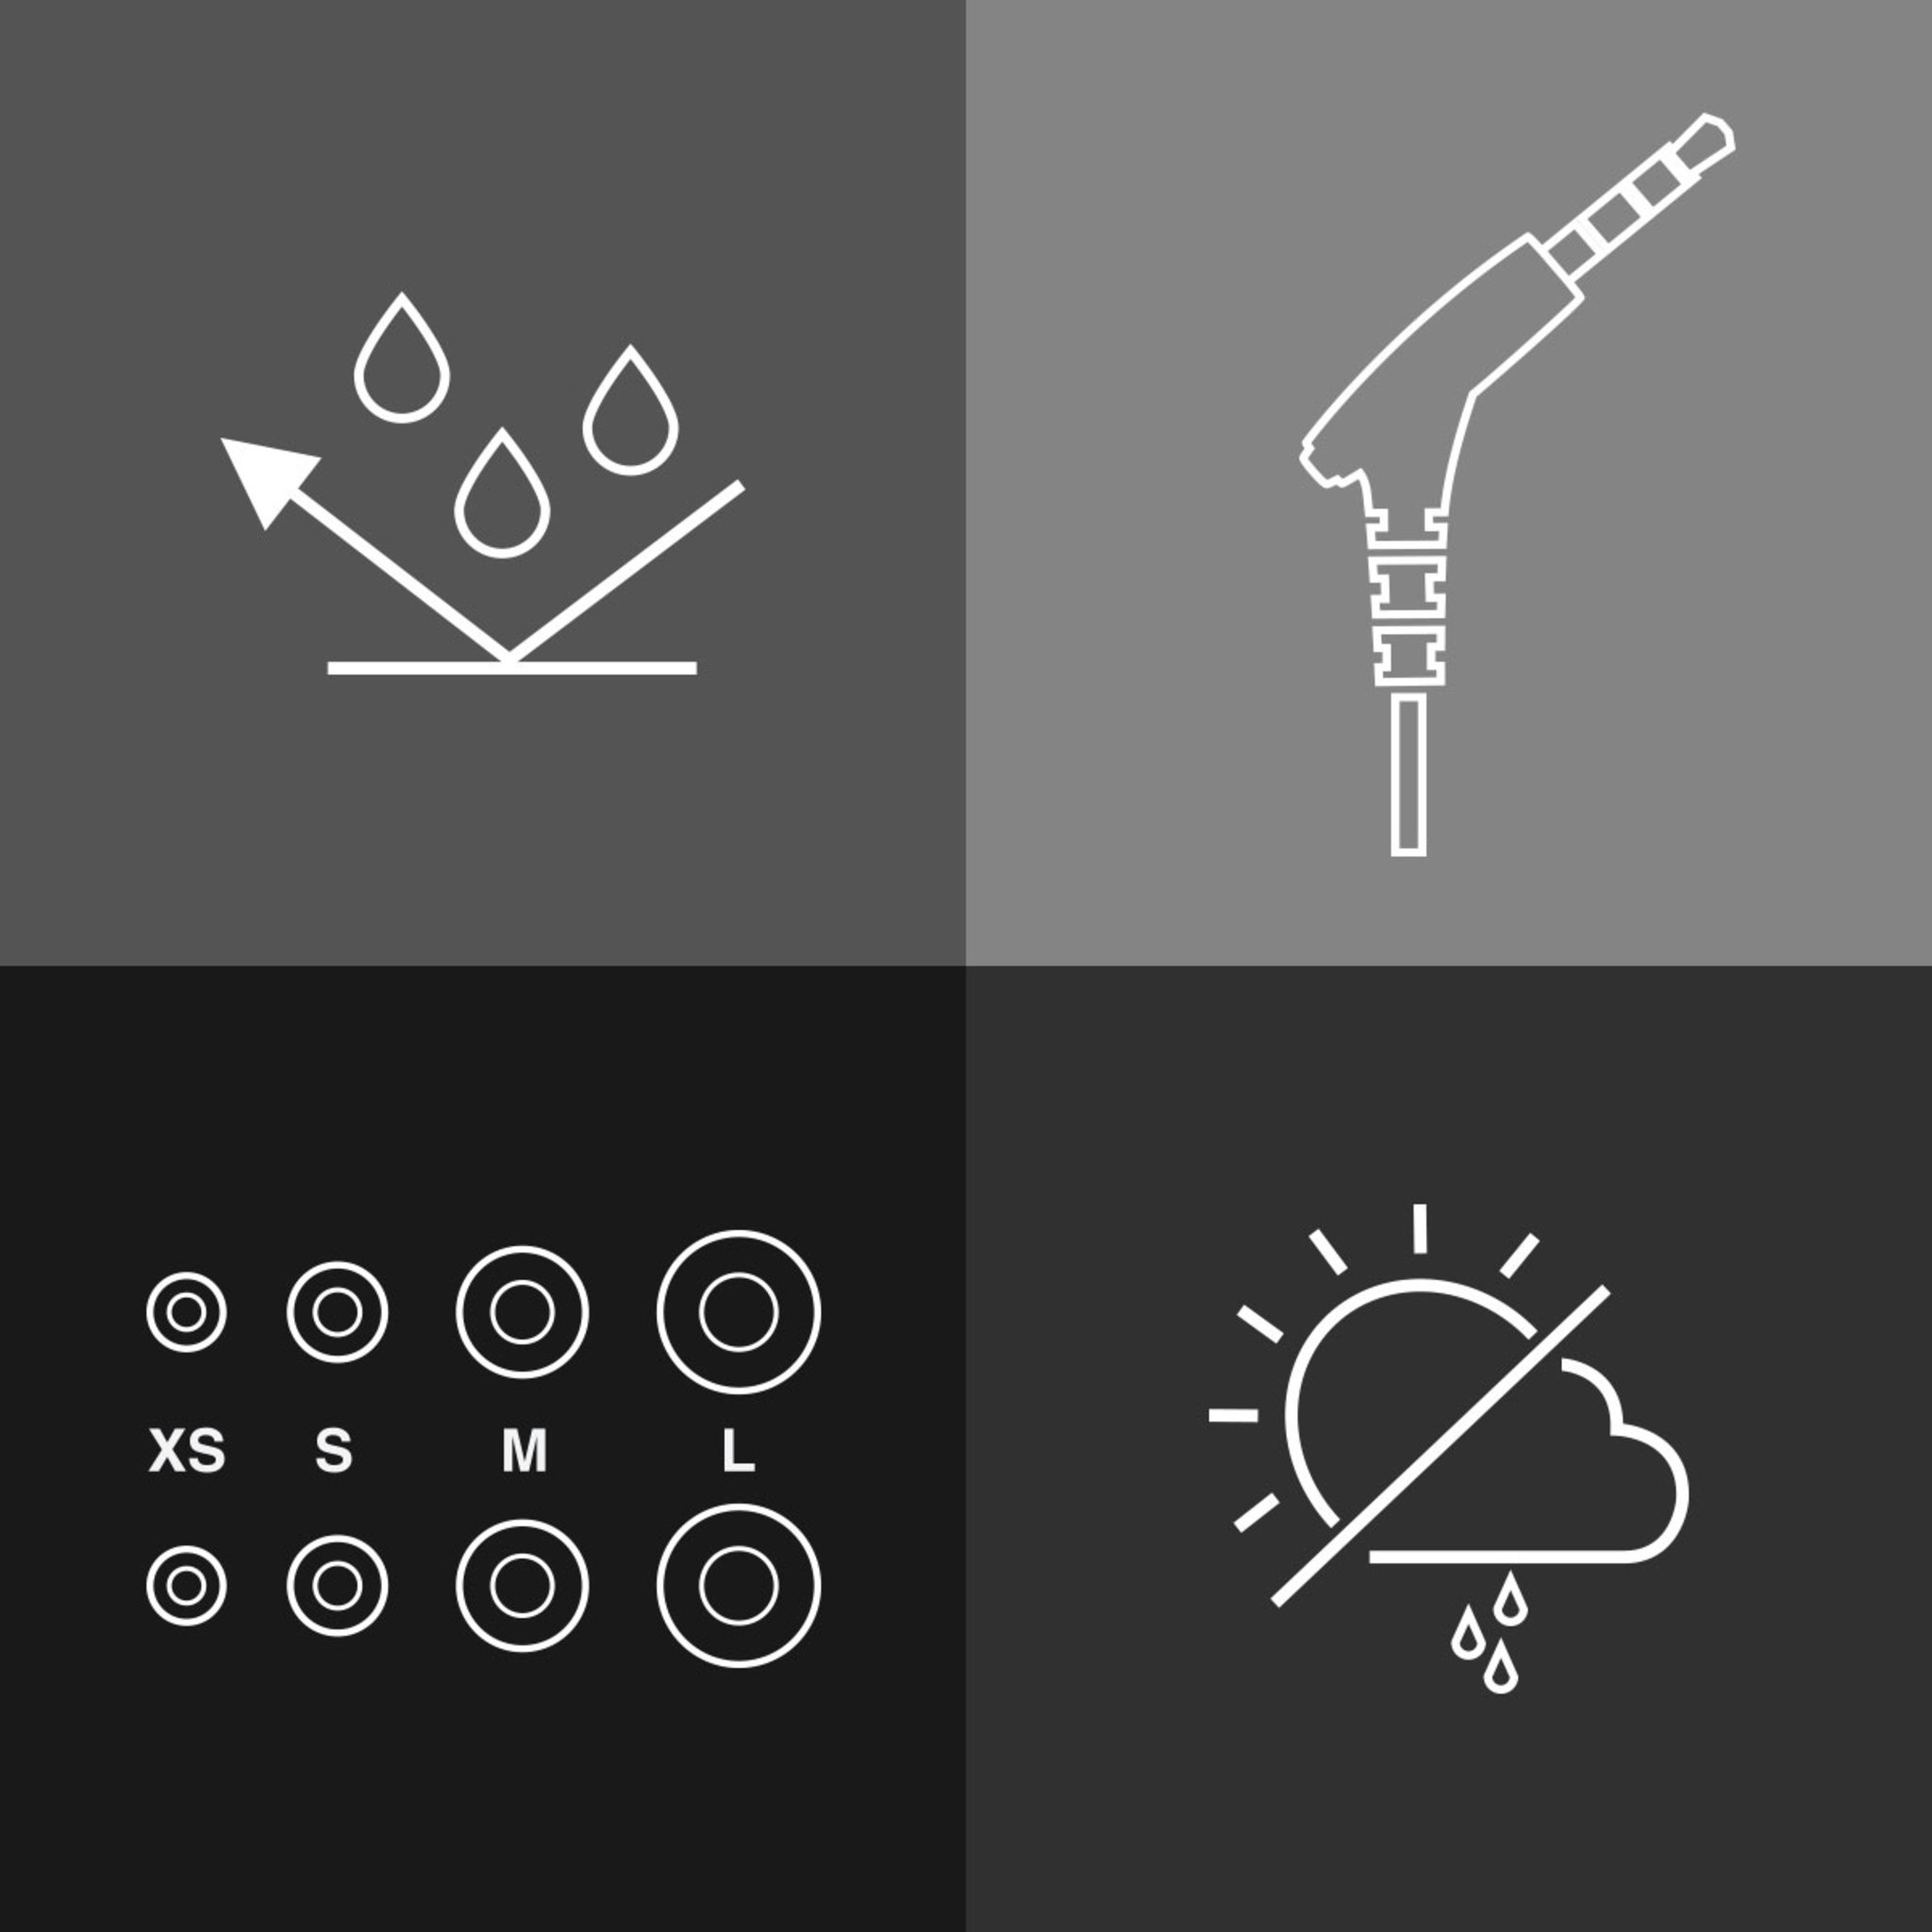 Icons showing weather resistance, 3mm headphone jack and Small, Medium and Large earbuds included